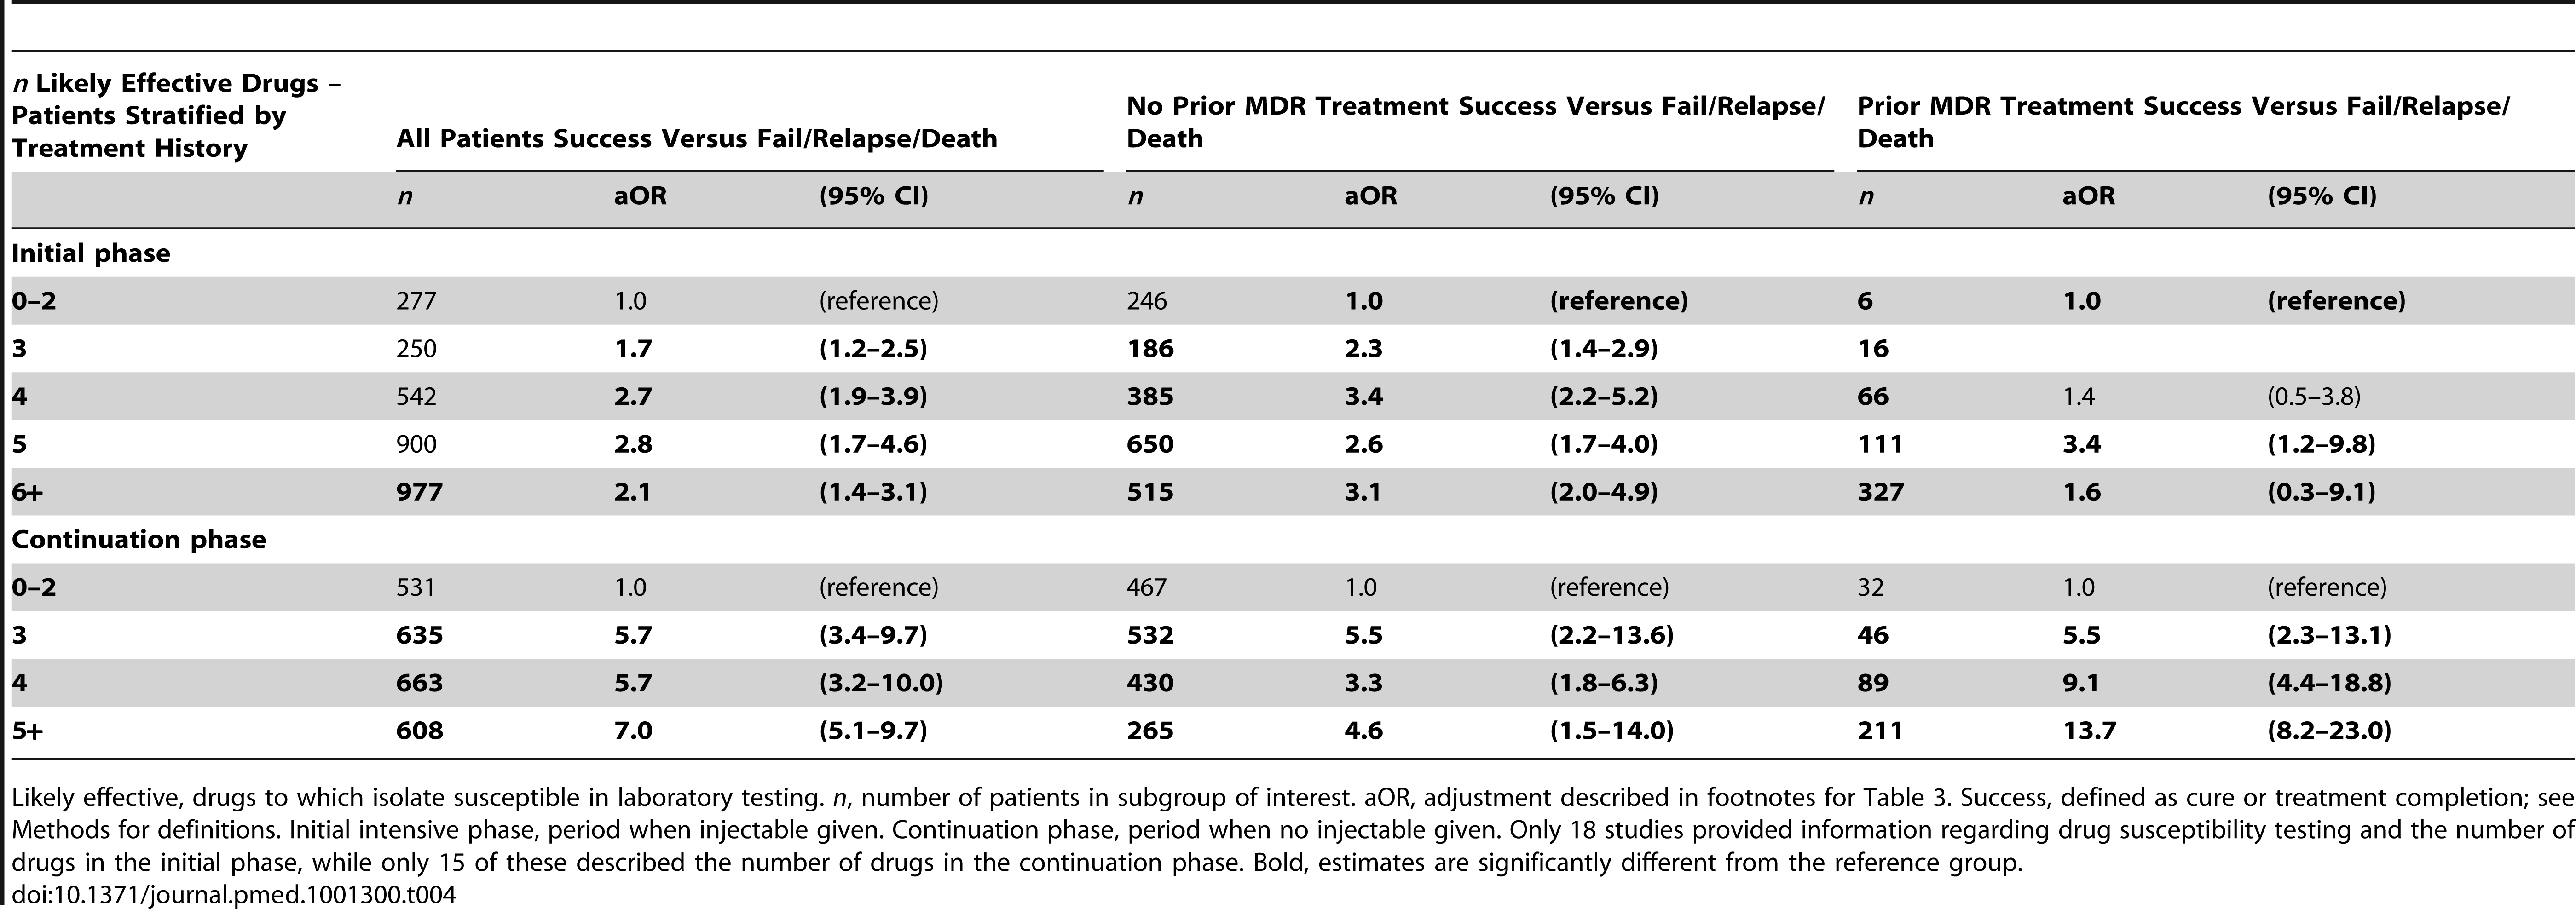 Effect of previous treatment on association of number of likely effective drugs with treatment success—during different phases of treatment.